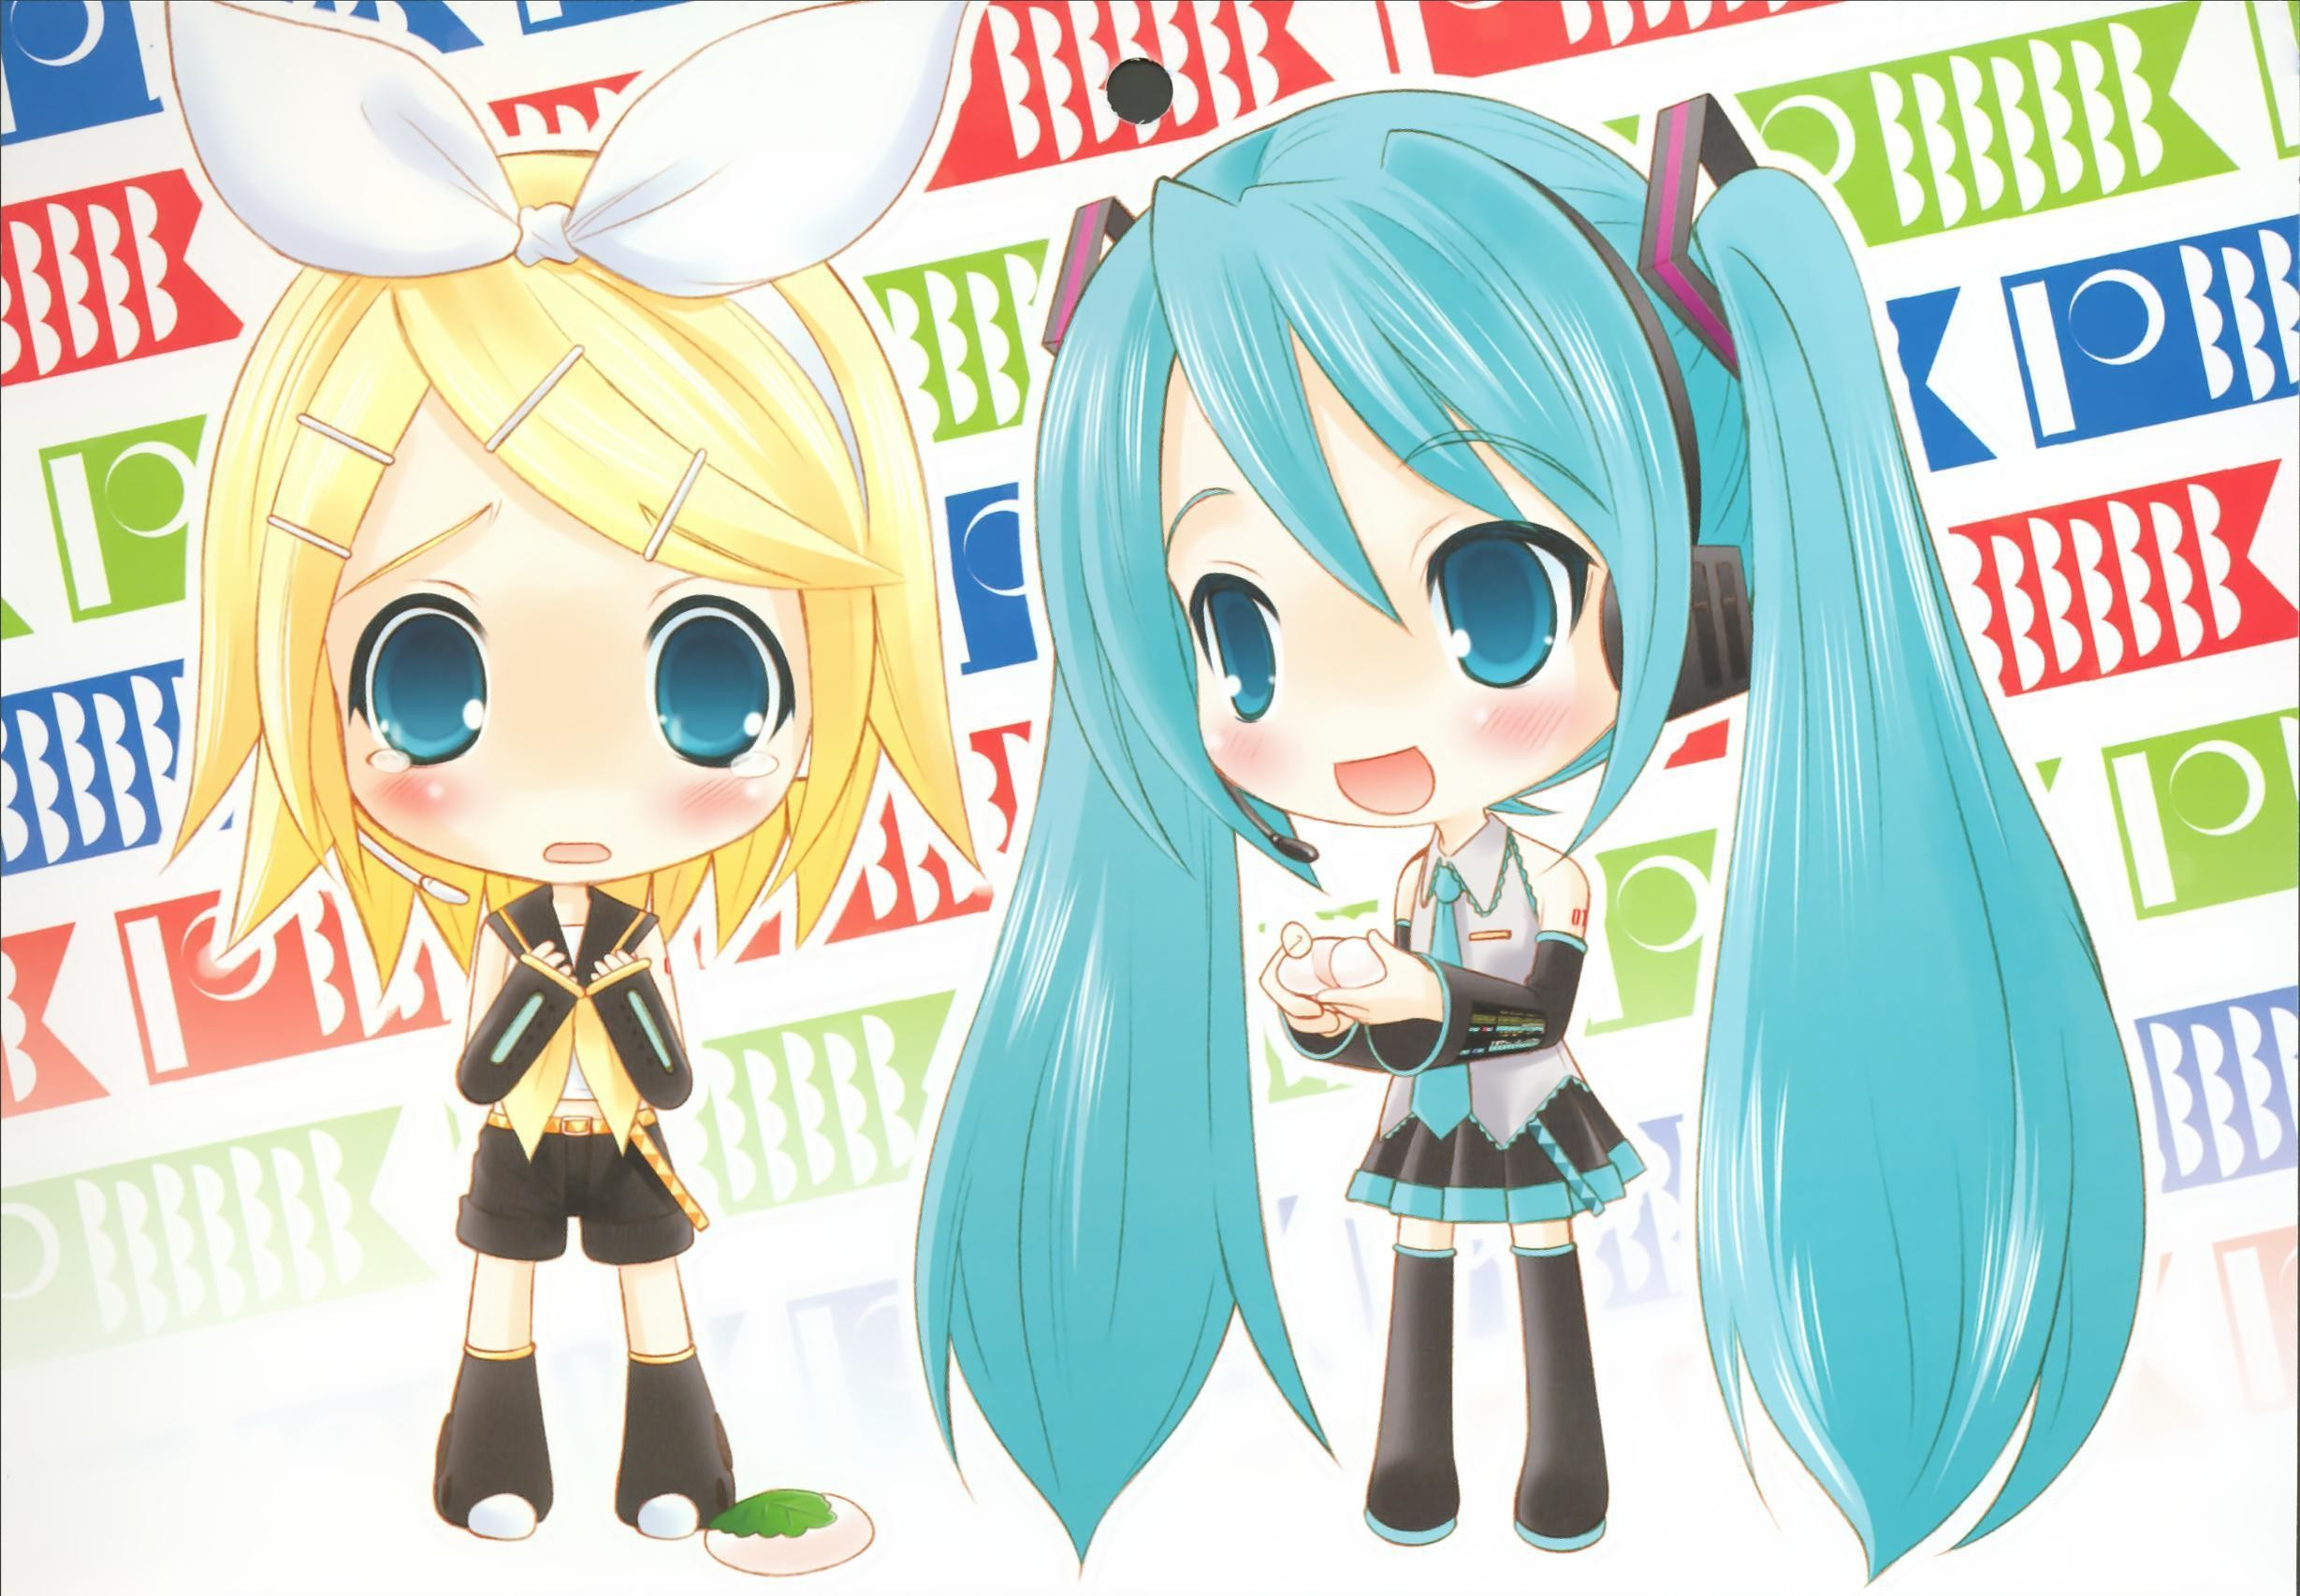 Anime Chibi Vocaloid Wallpapers HD